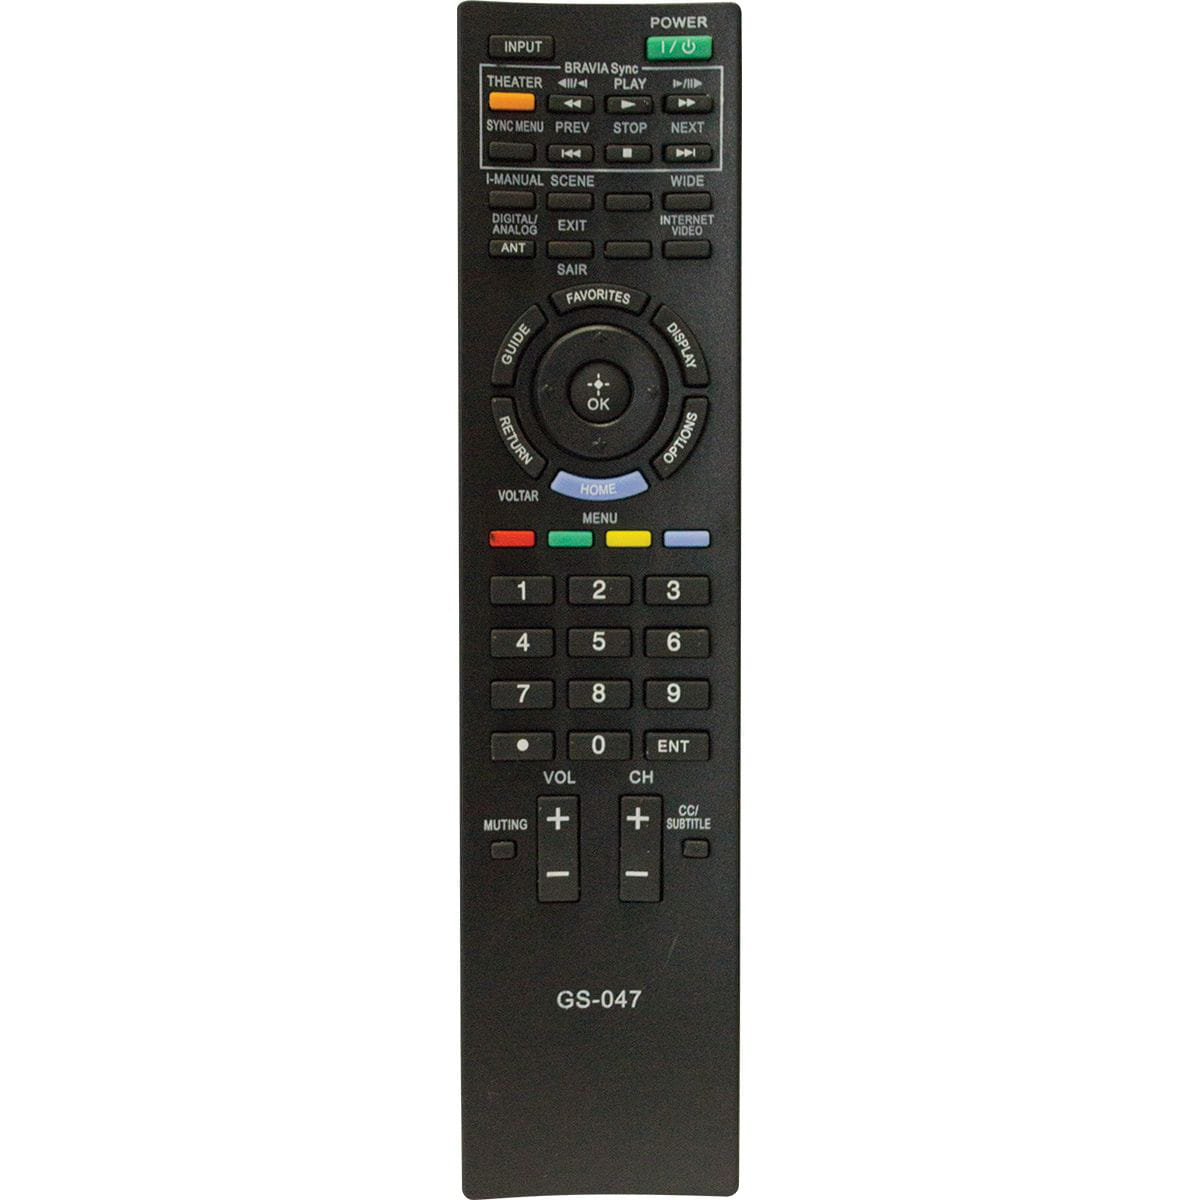 Controle Remoto P/ Tv Lcd Sony Gs-047 Gigasat